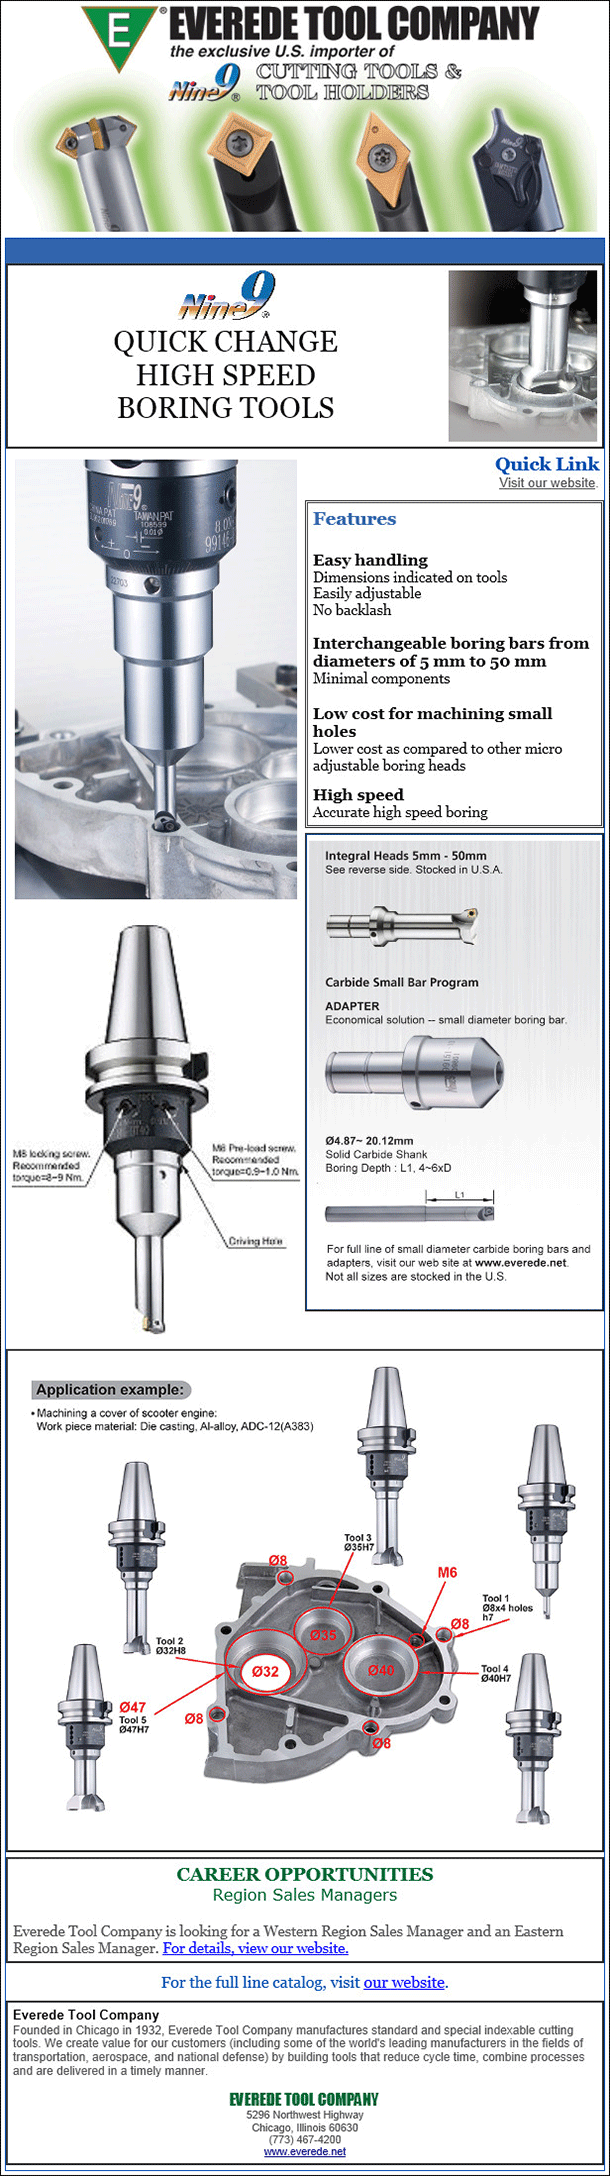 eNews Quick Change High Speed Boring Tools Email Promo